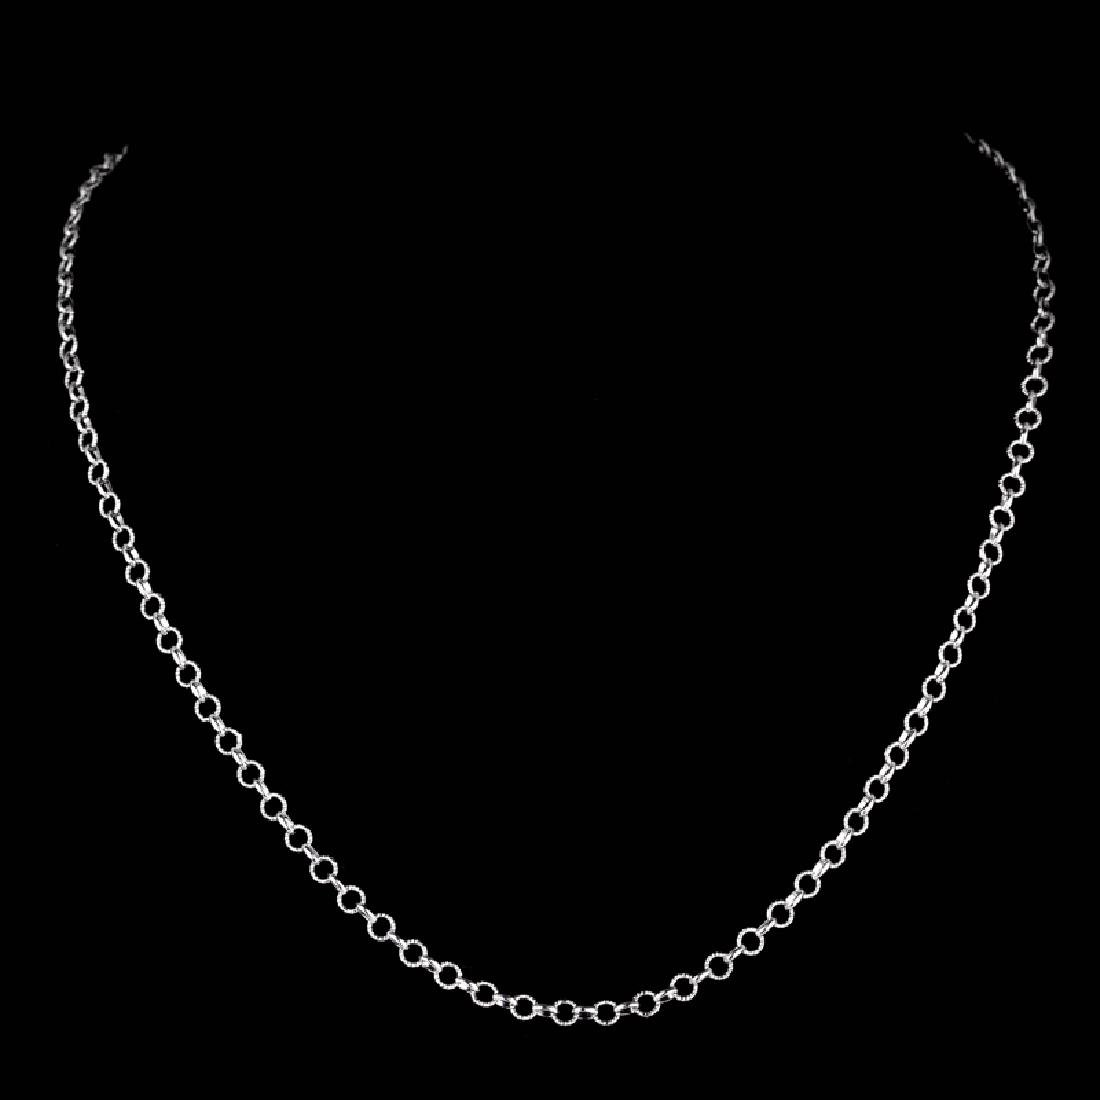 *Fine Jewelry 14KT White Gold, 5.0GR, 18'' Twisted